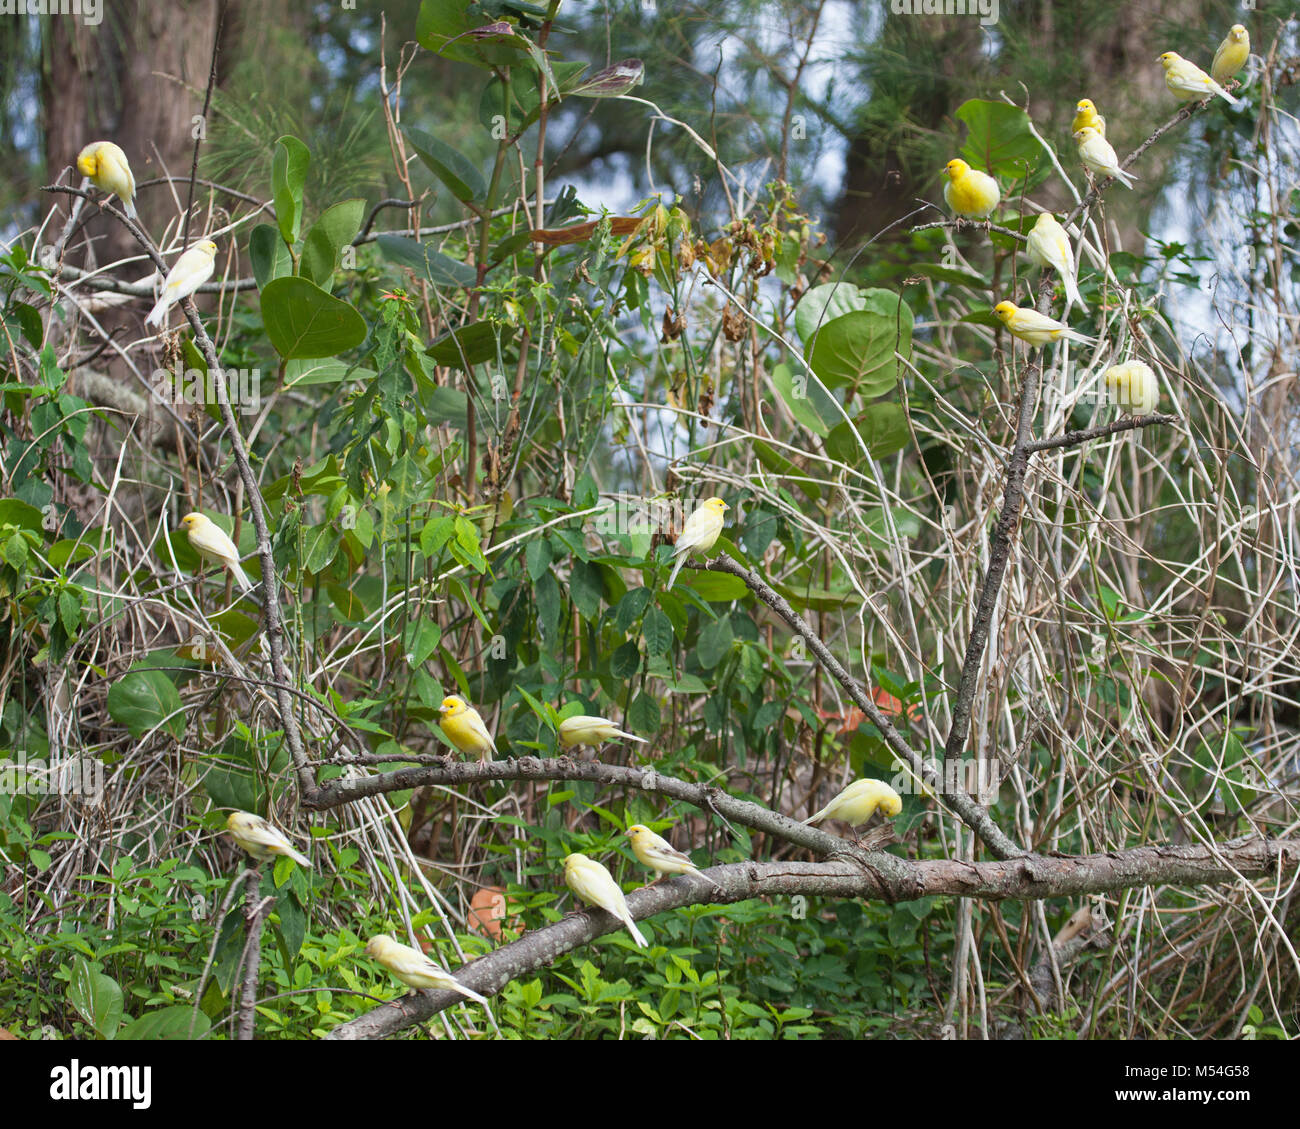 Wild canary flock (Serinus canaria) descended from pet birds released on Midway Atoll over a century ago by Commercial - Stock Image